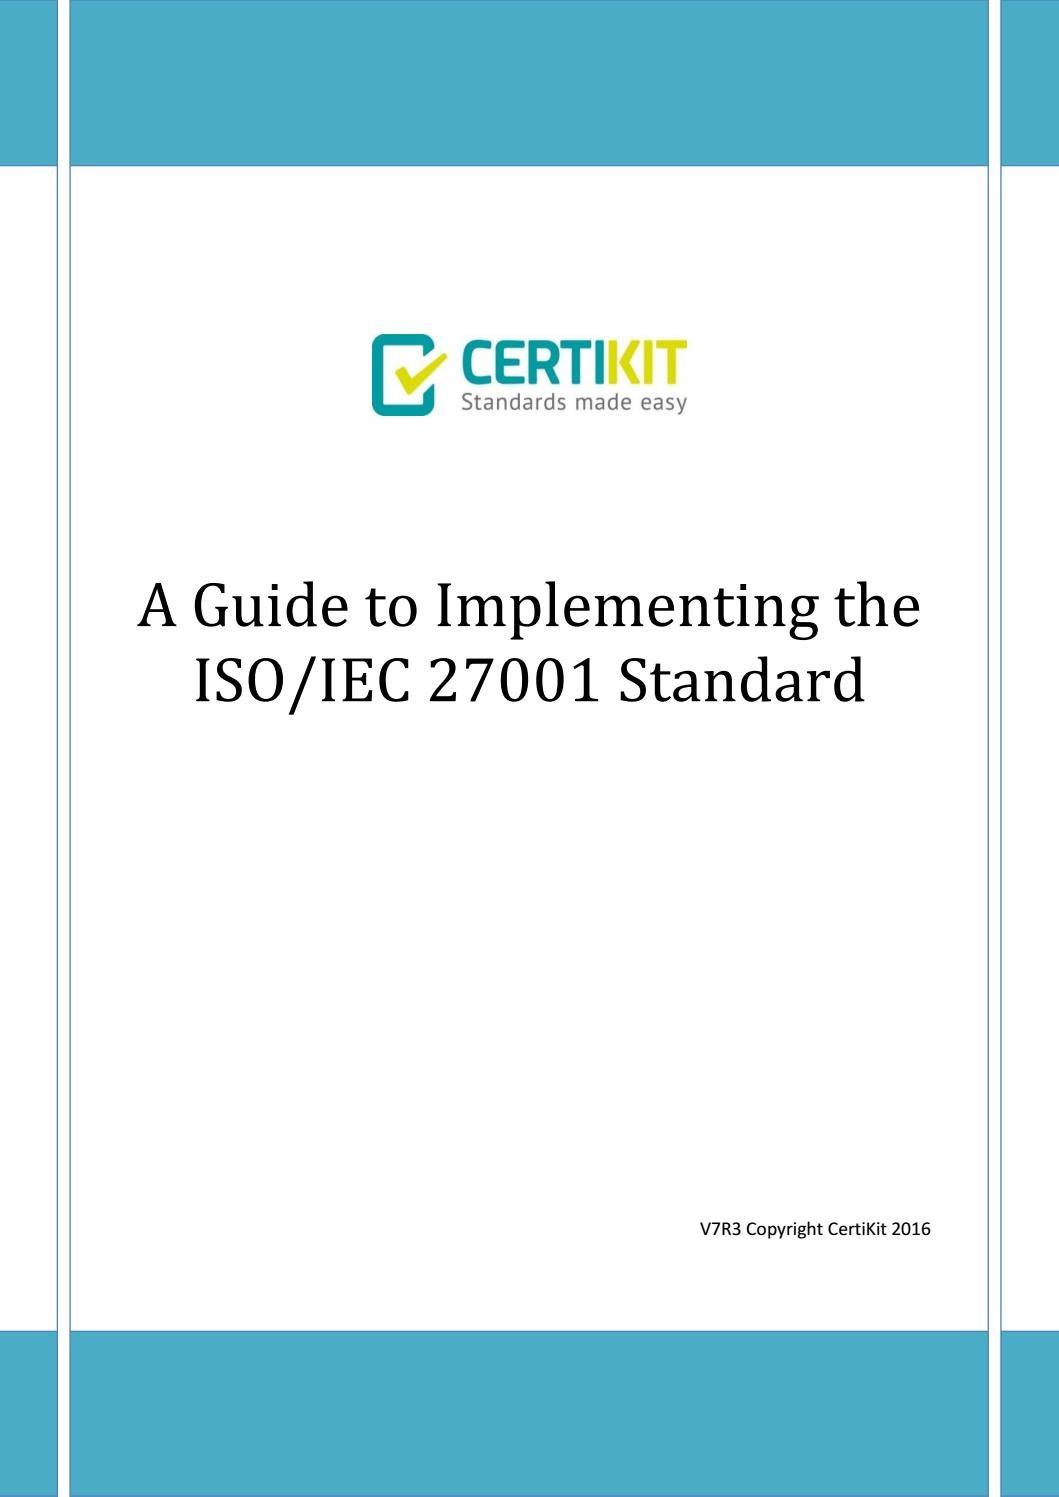 iso 27001 standard summary Iso 27001:2013 foundations course in this online course you'll learn everything you need to know about iso 27001, including all the requirements and best practices for compliance the course is made for beginners in information security and iso standards, and no prior knowledge is needed to take this course.